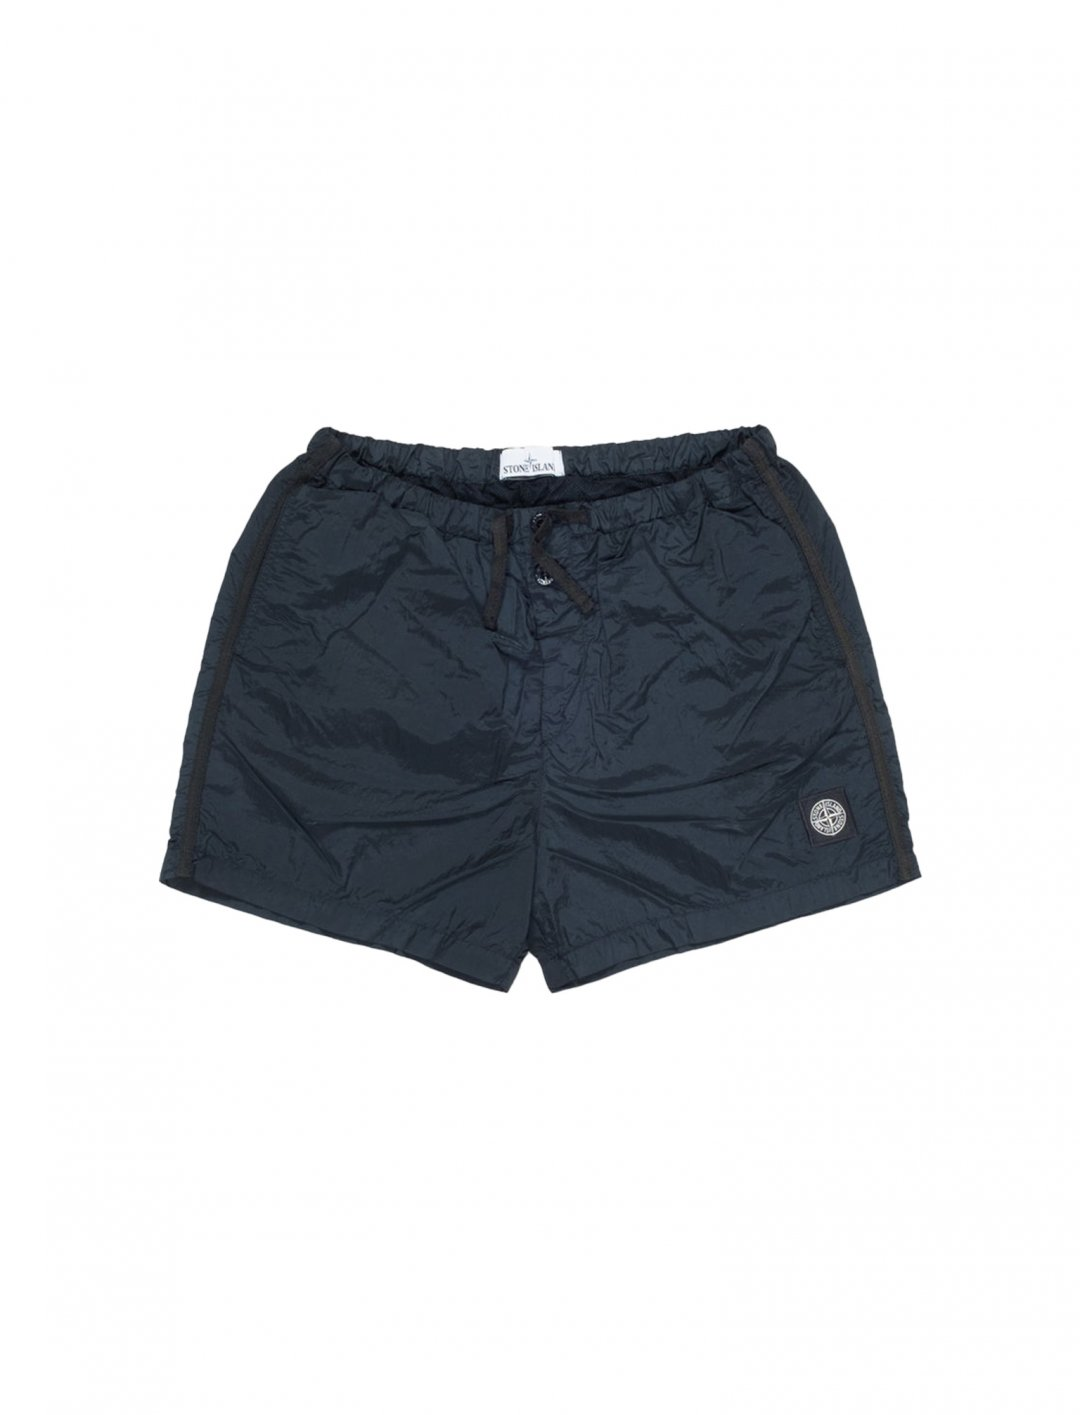 "B Young's Swim Shorts {""id"":5,""product_section_id"":1,""name"":""Clothing"",""order"":5} Stone Island"